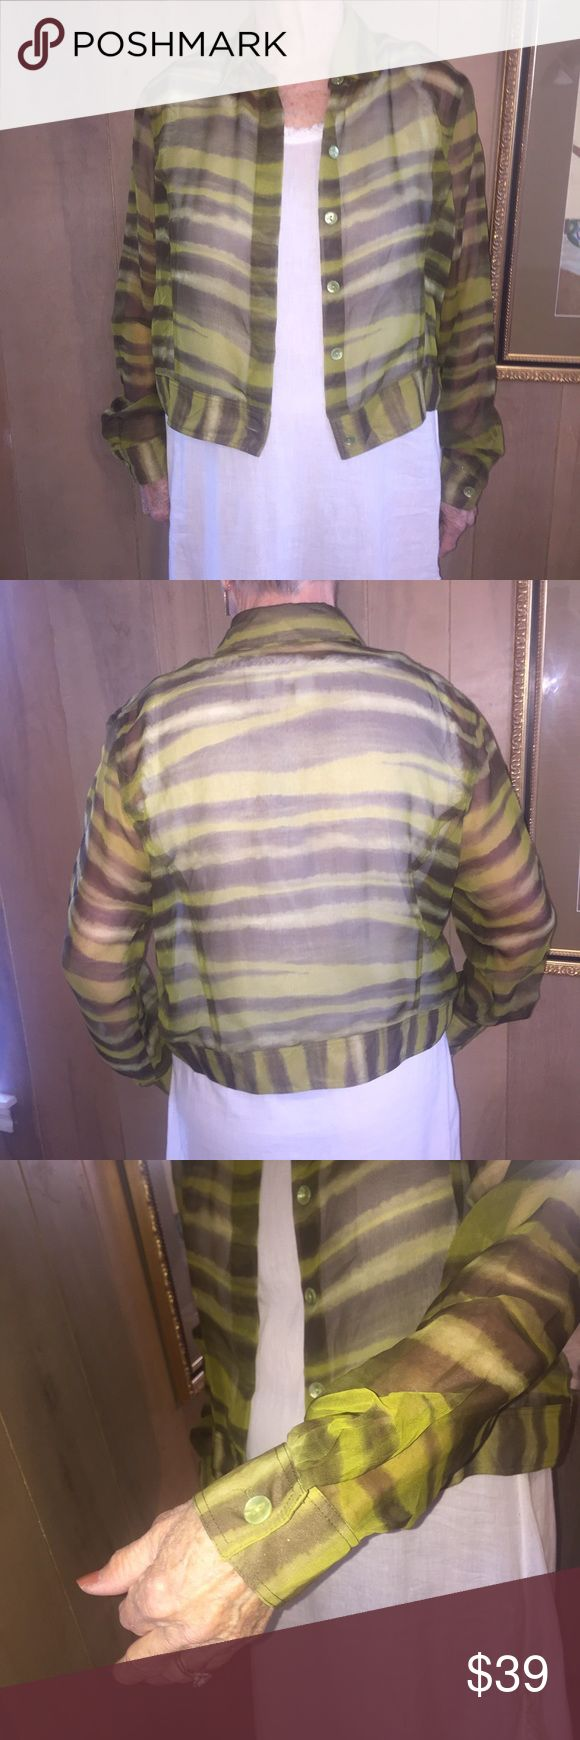 ❤️C'est Duo Watercolor Sheer Jacket. Sz XL ❤️C'est Duo Watercolor Sheer Jacket. Sz XL.  Boxy like a Jean jacket. 100% polyester. Model is a size 10. Fits size 10-14 easily. Excellent, nearly new condition. Jackets & Coats